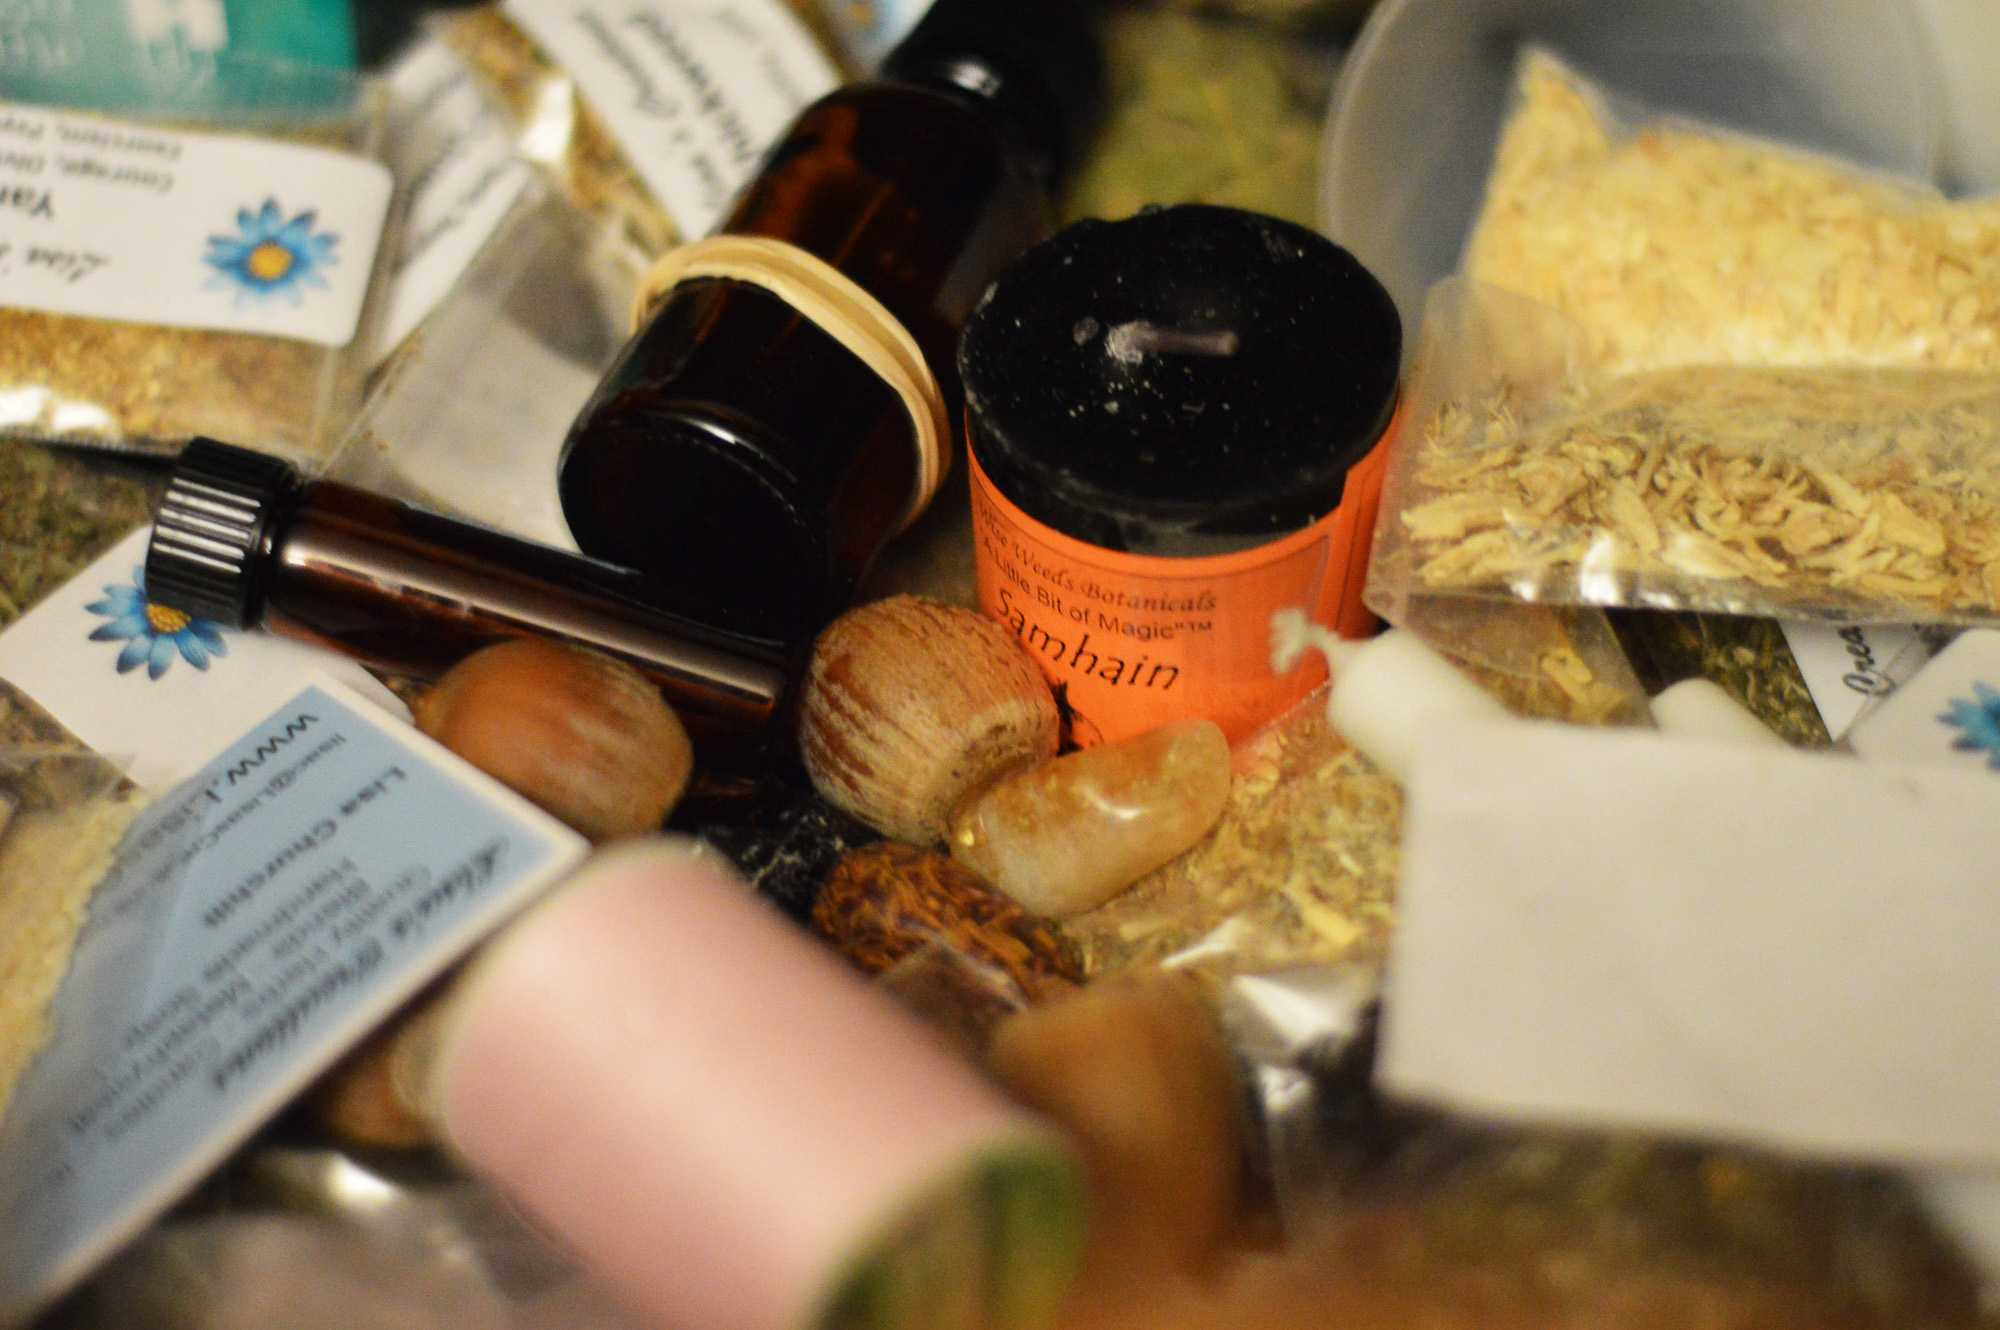 An assortment of herbs and supplies used by Clare Darnall for casting spells and celebrating Samhain.